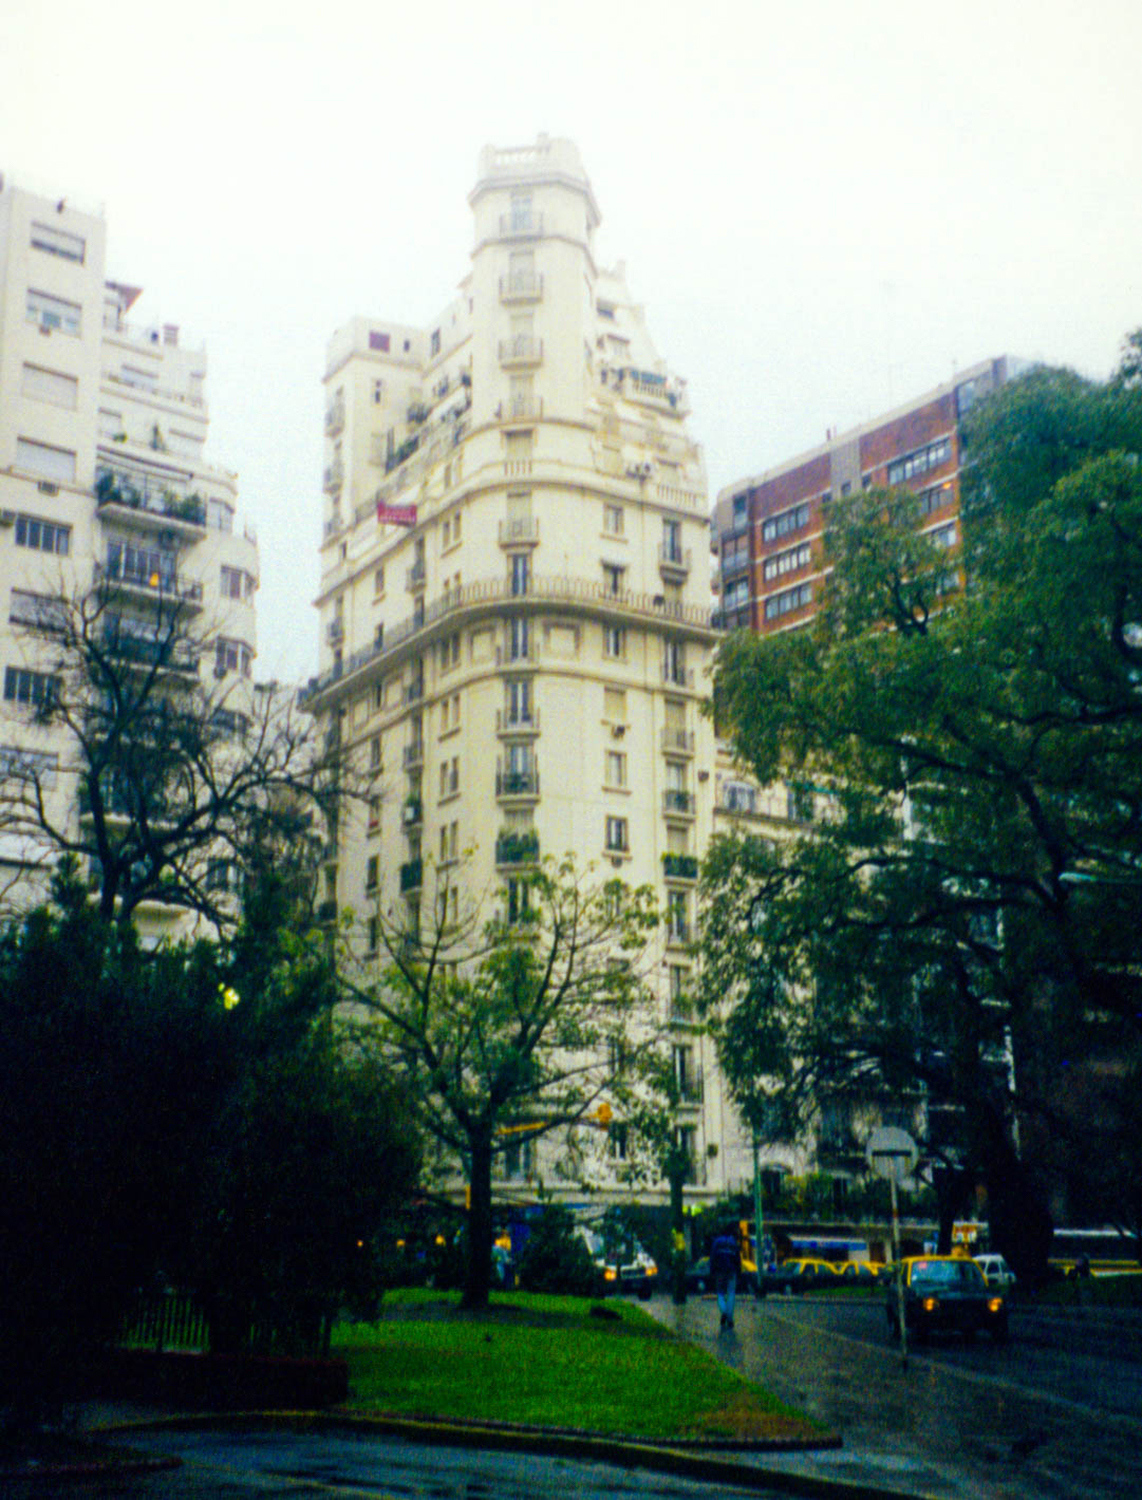 <p>An elegant flat with improbably narrow top floors at the corner of Juncal and Montevideo. </p>